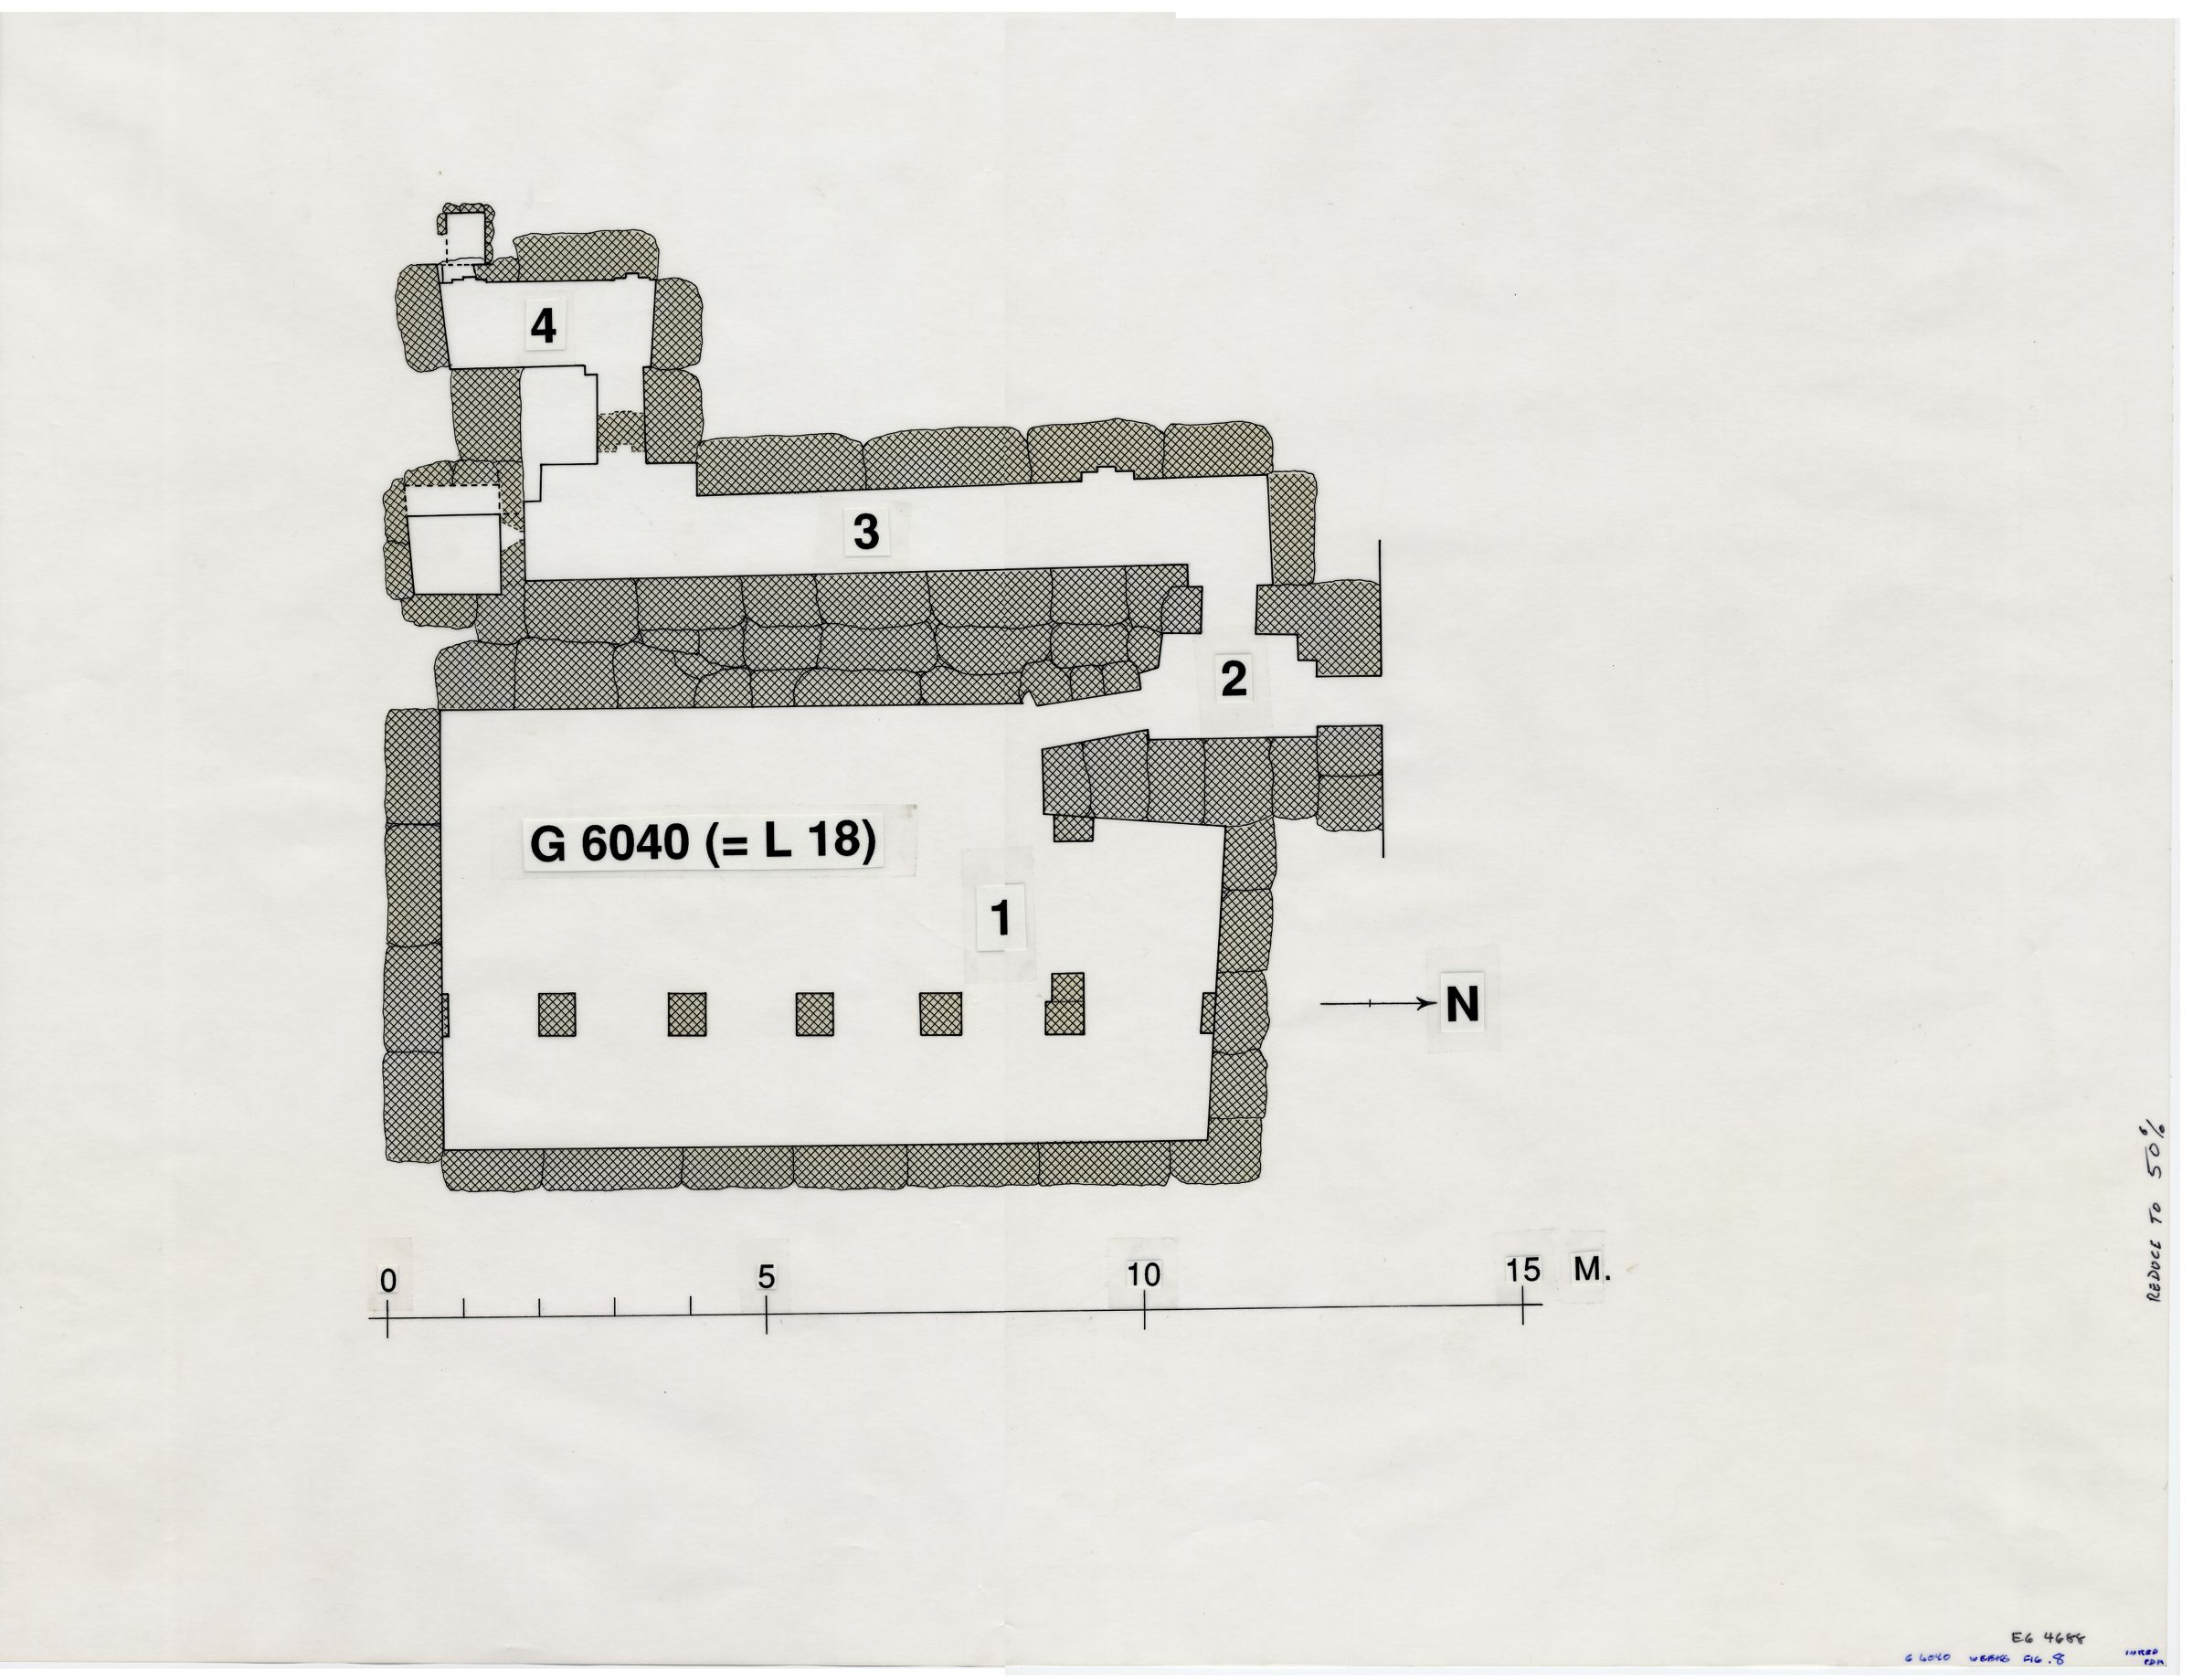 Maps and plans: G 6040, Plan